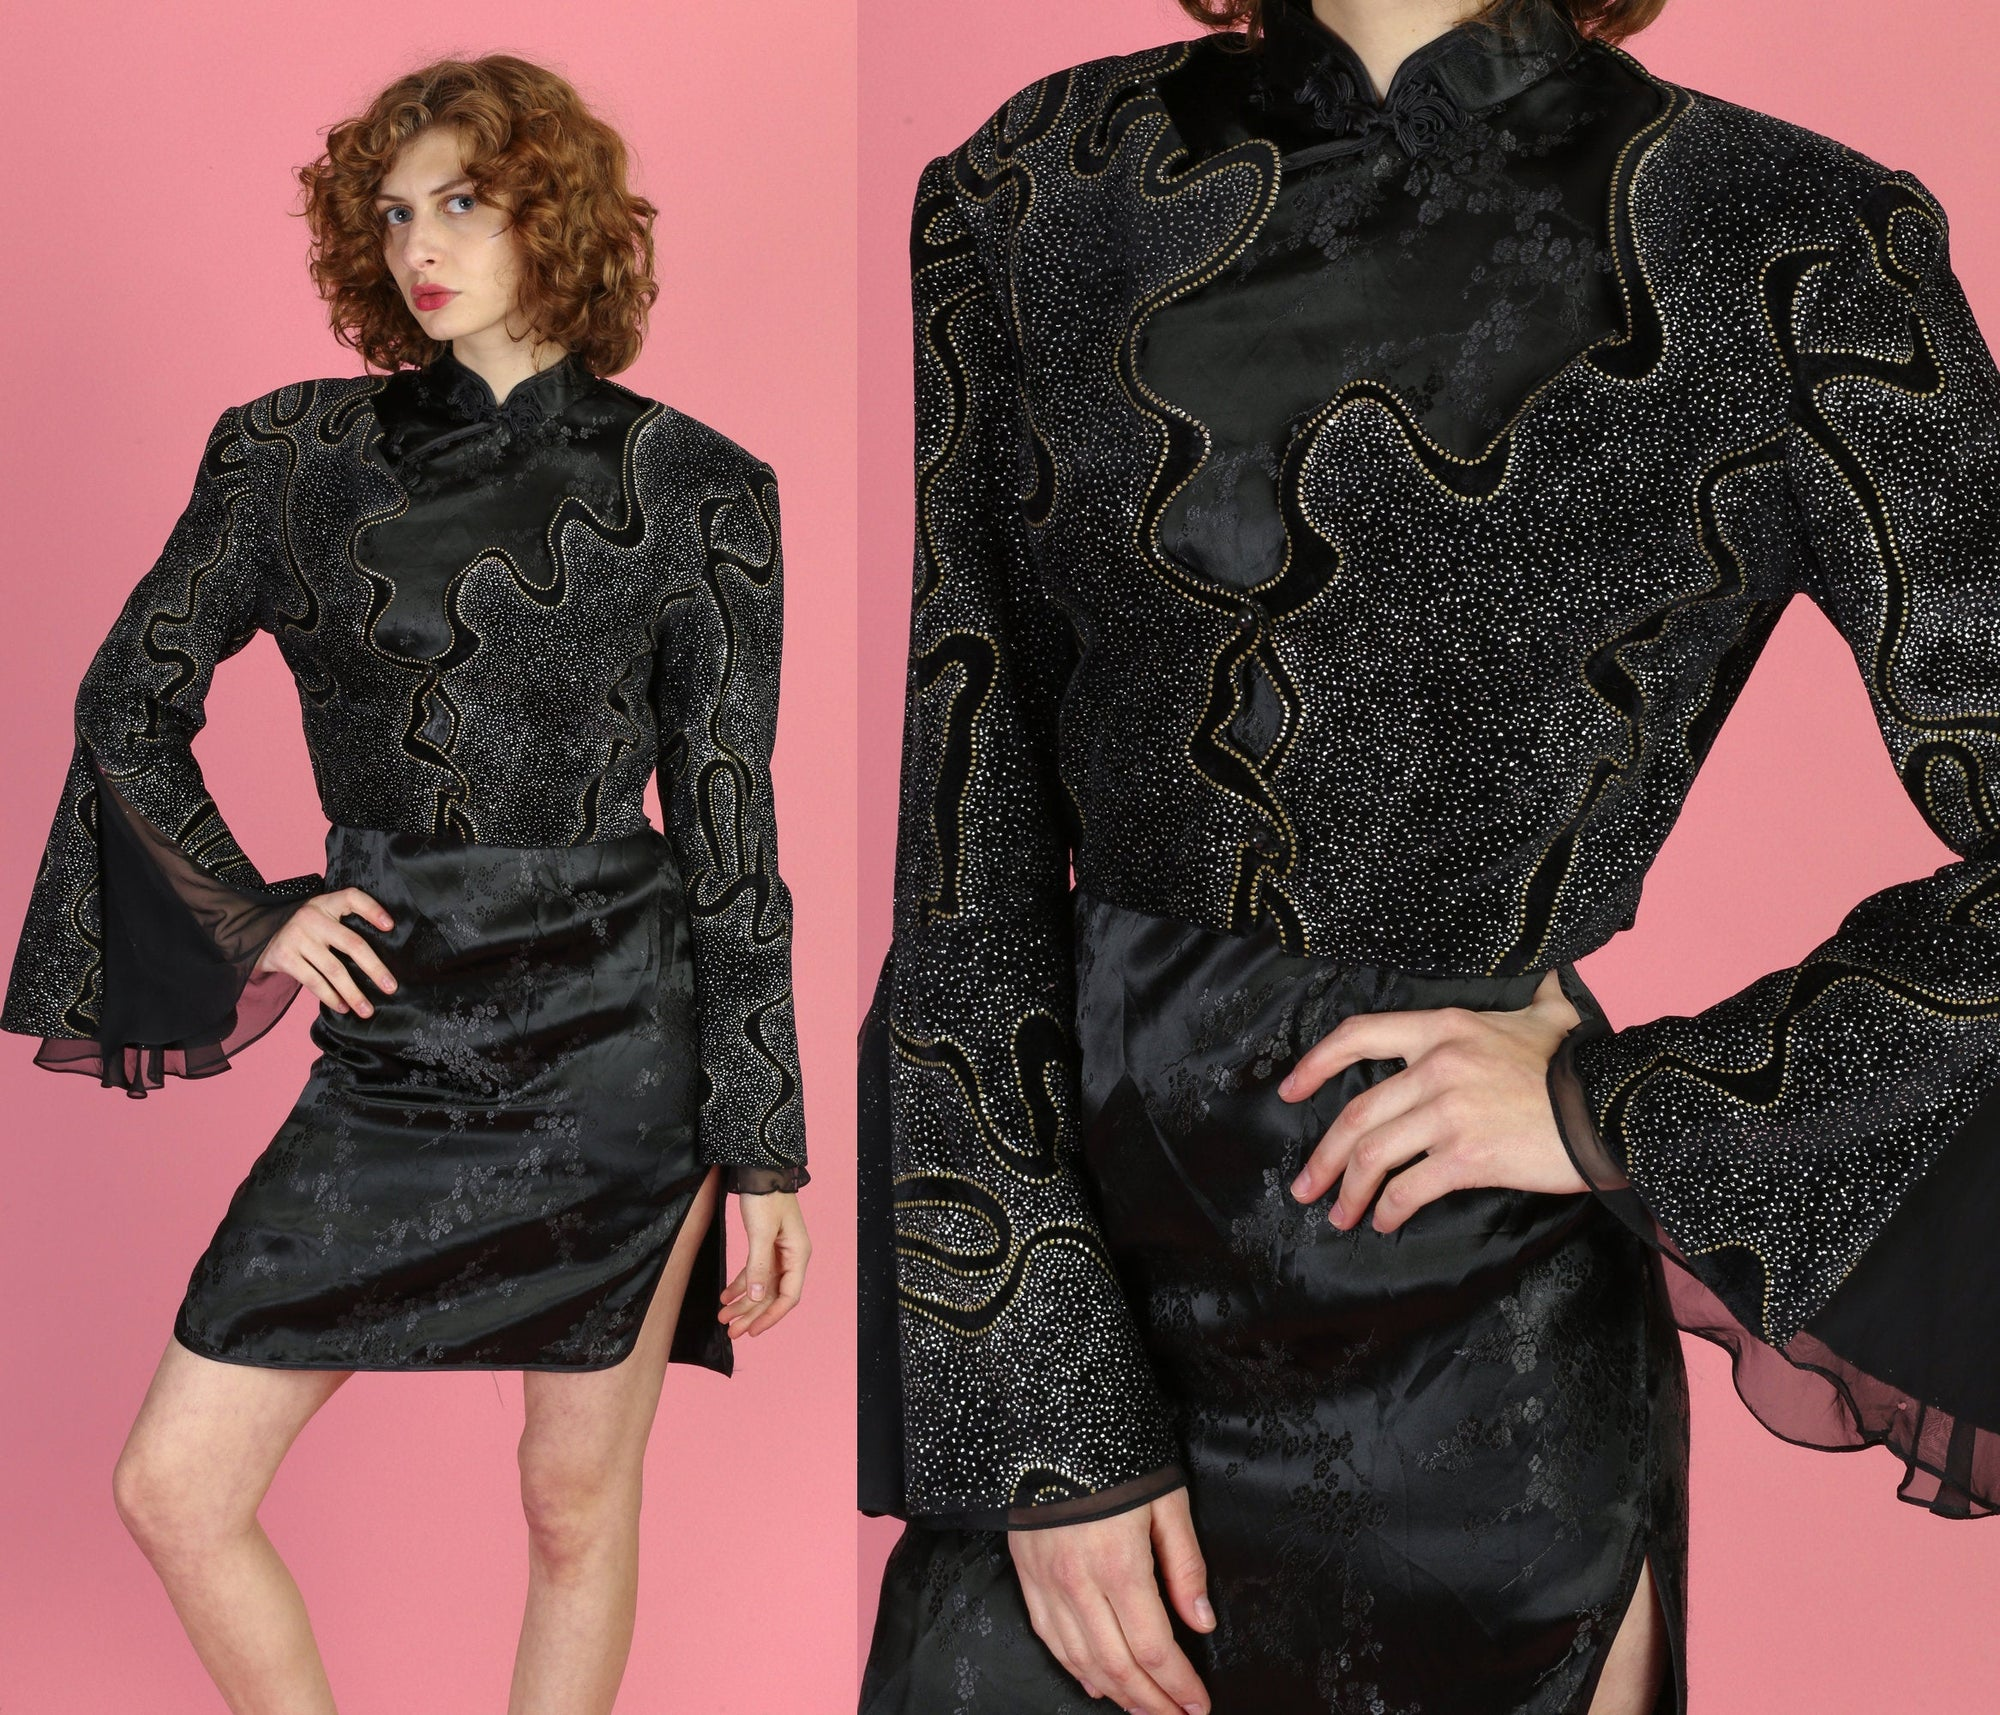 80s Velvet Metallic Cropped Bolero Jacket - Medium